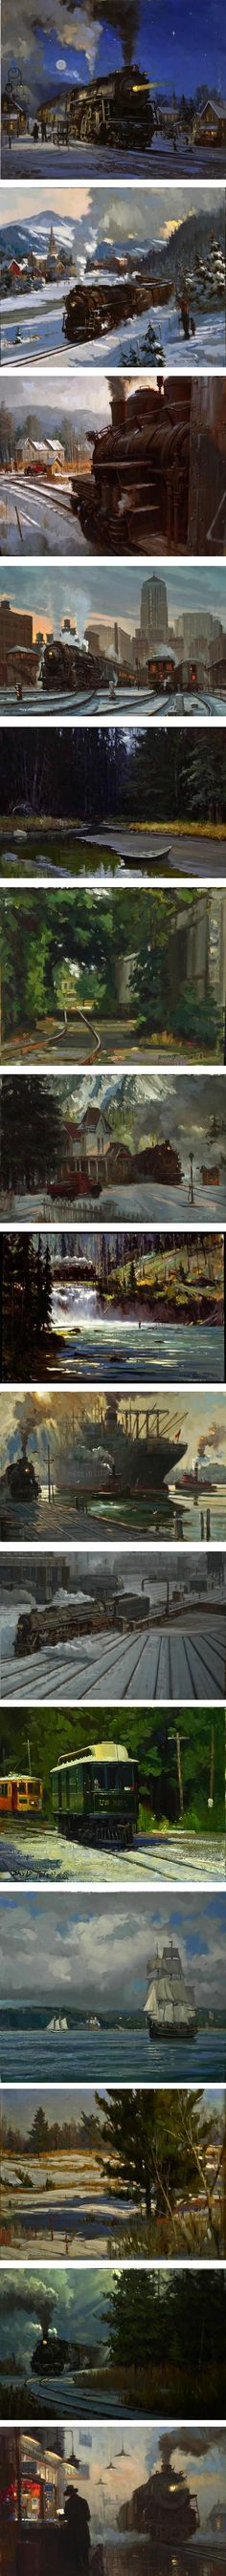 David Tutwiler, trains, landscape paintings